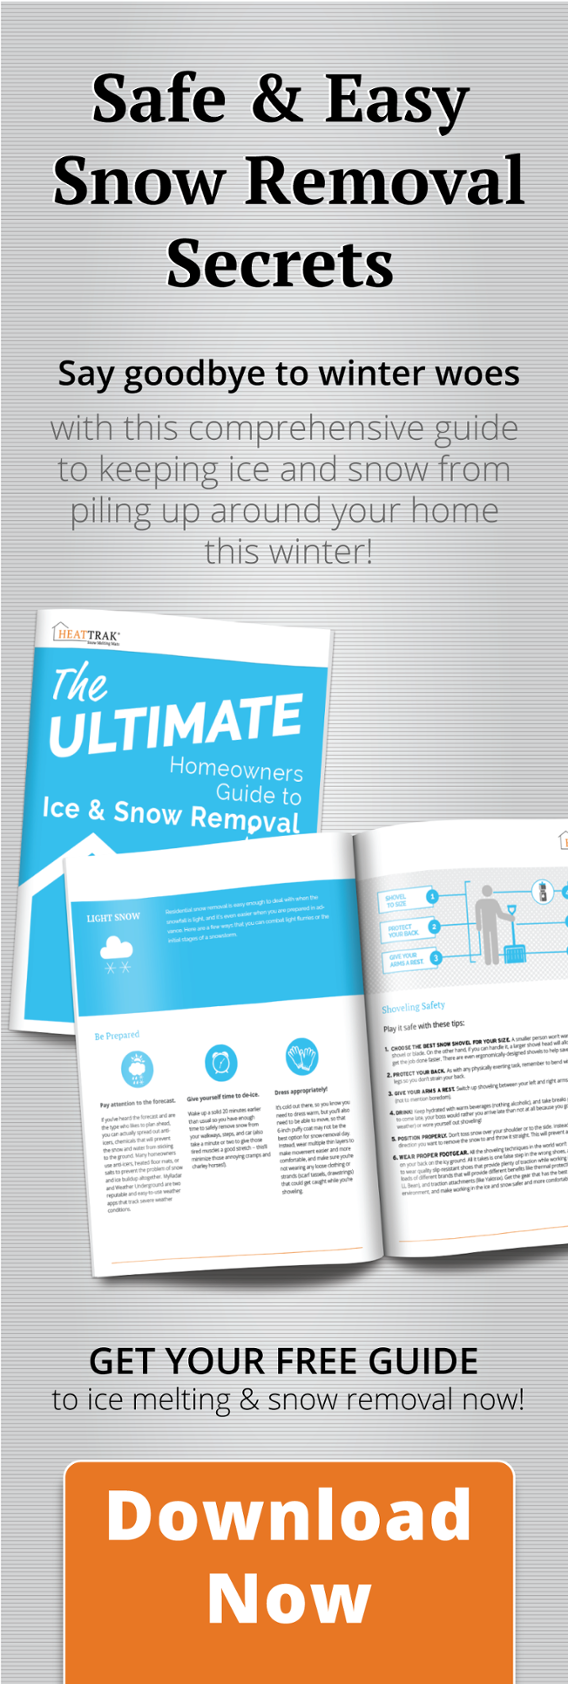 Seeking the secrte to safe and easy snow remvoal? Find it here!